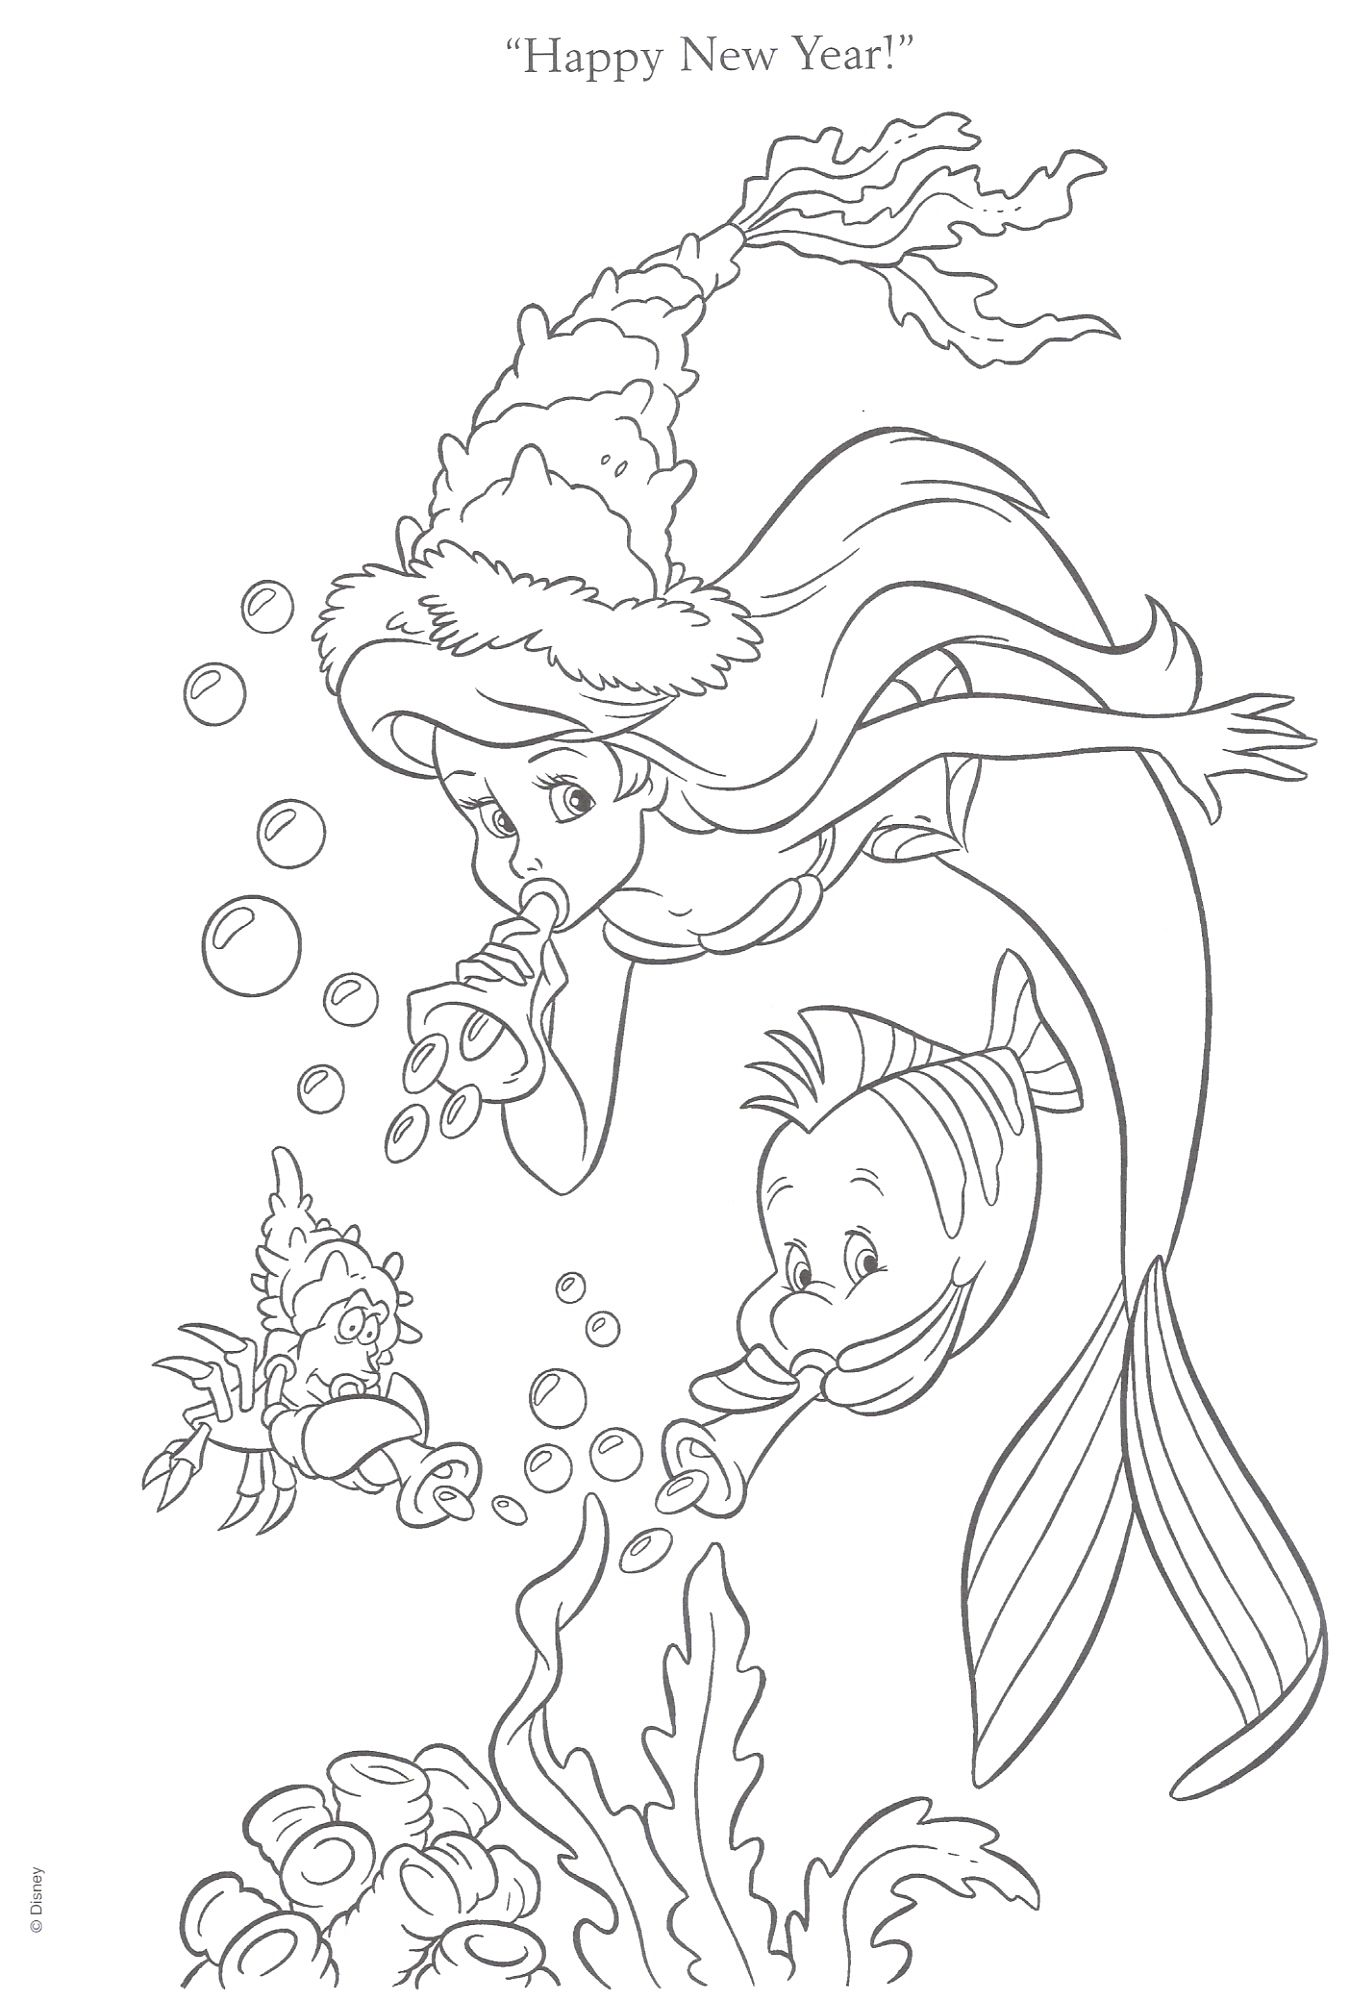 Free Coloring Pages Disney S The Little Mermaid Little Mermaid